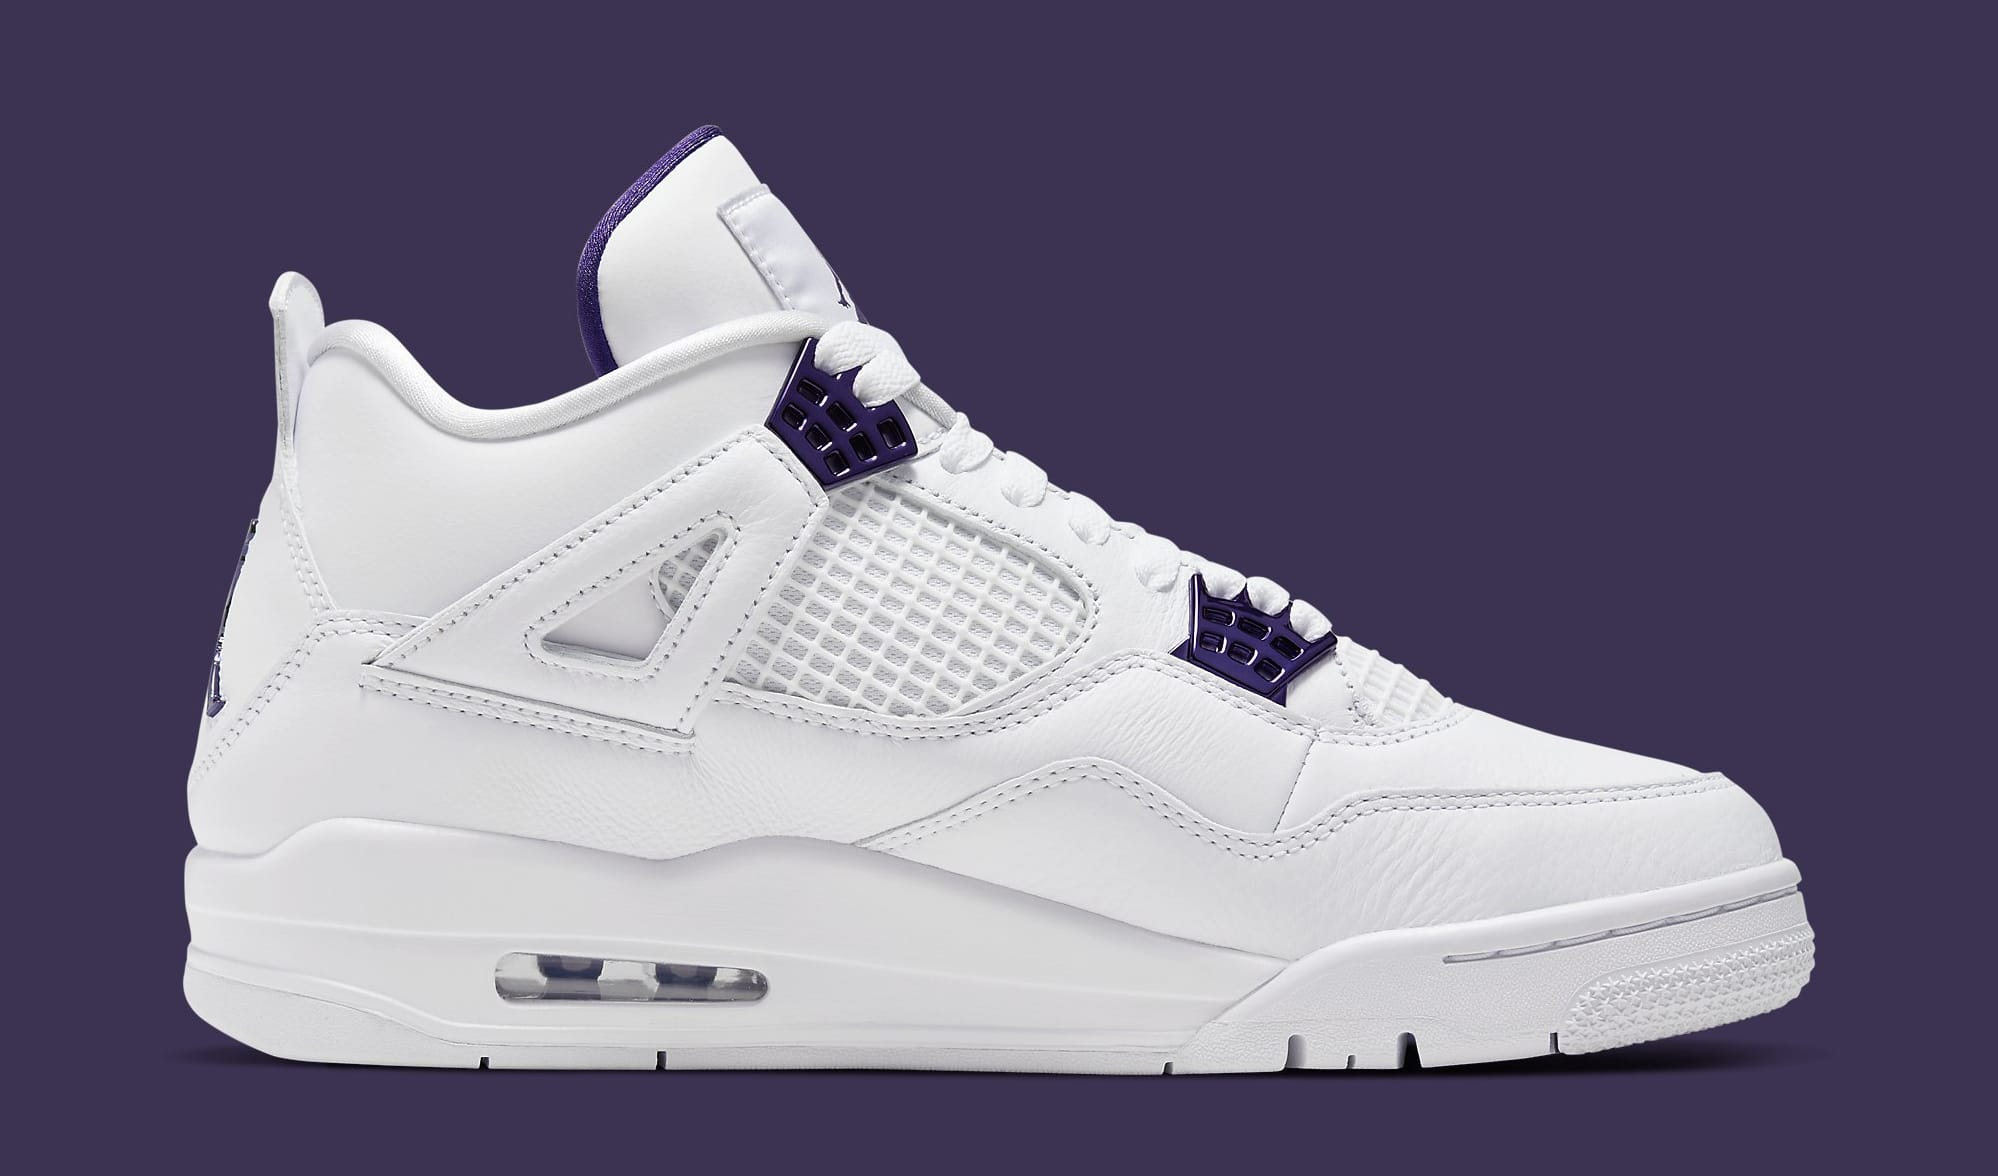 Air Jordan 4 Retro 'Metallic Purple' CT8527-115 Medial